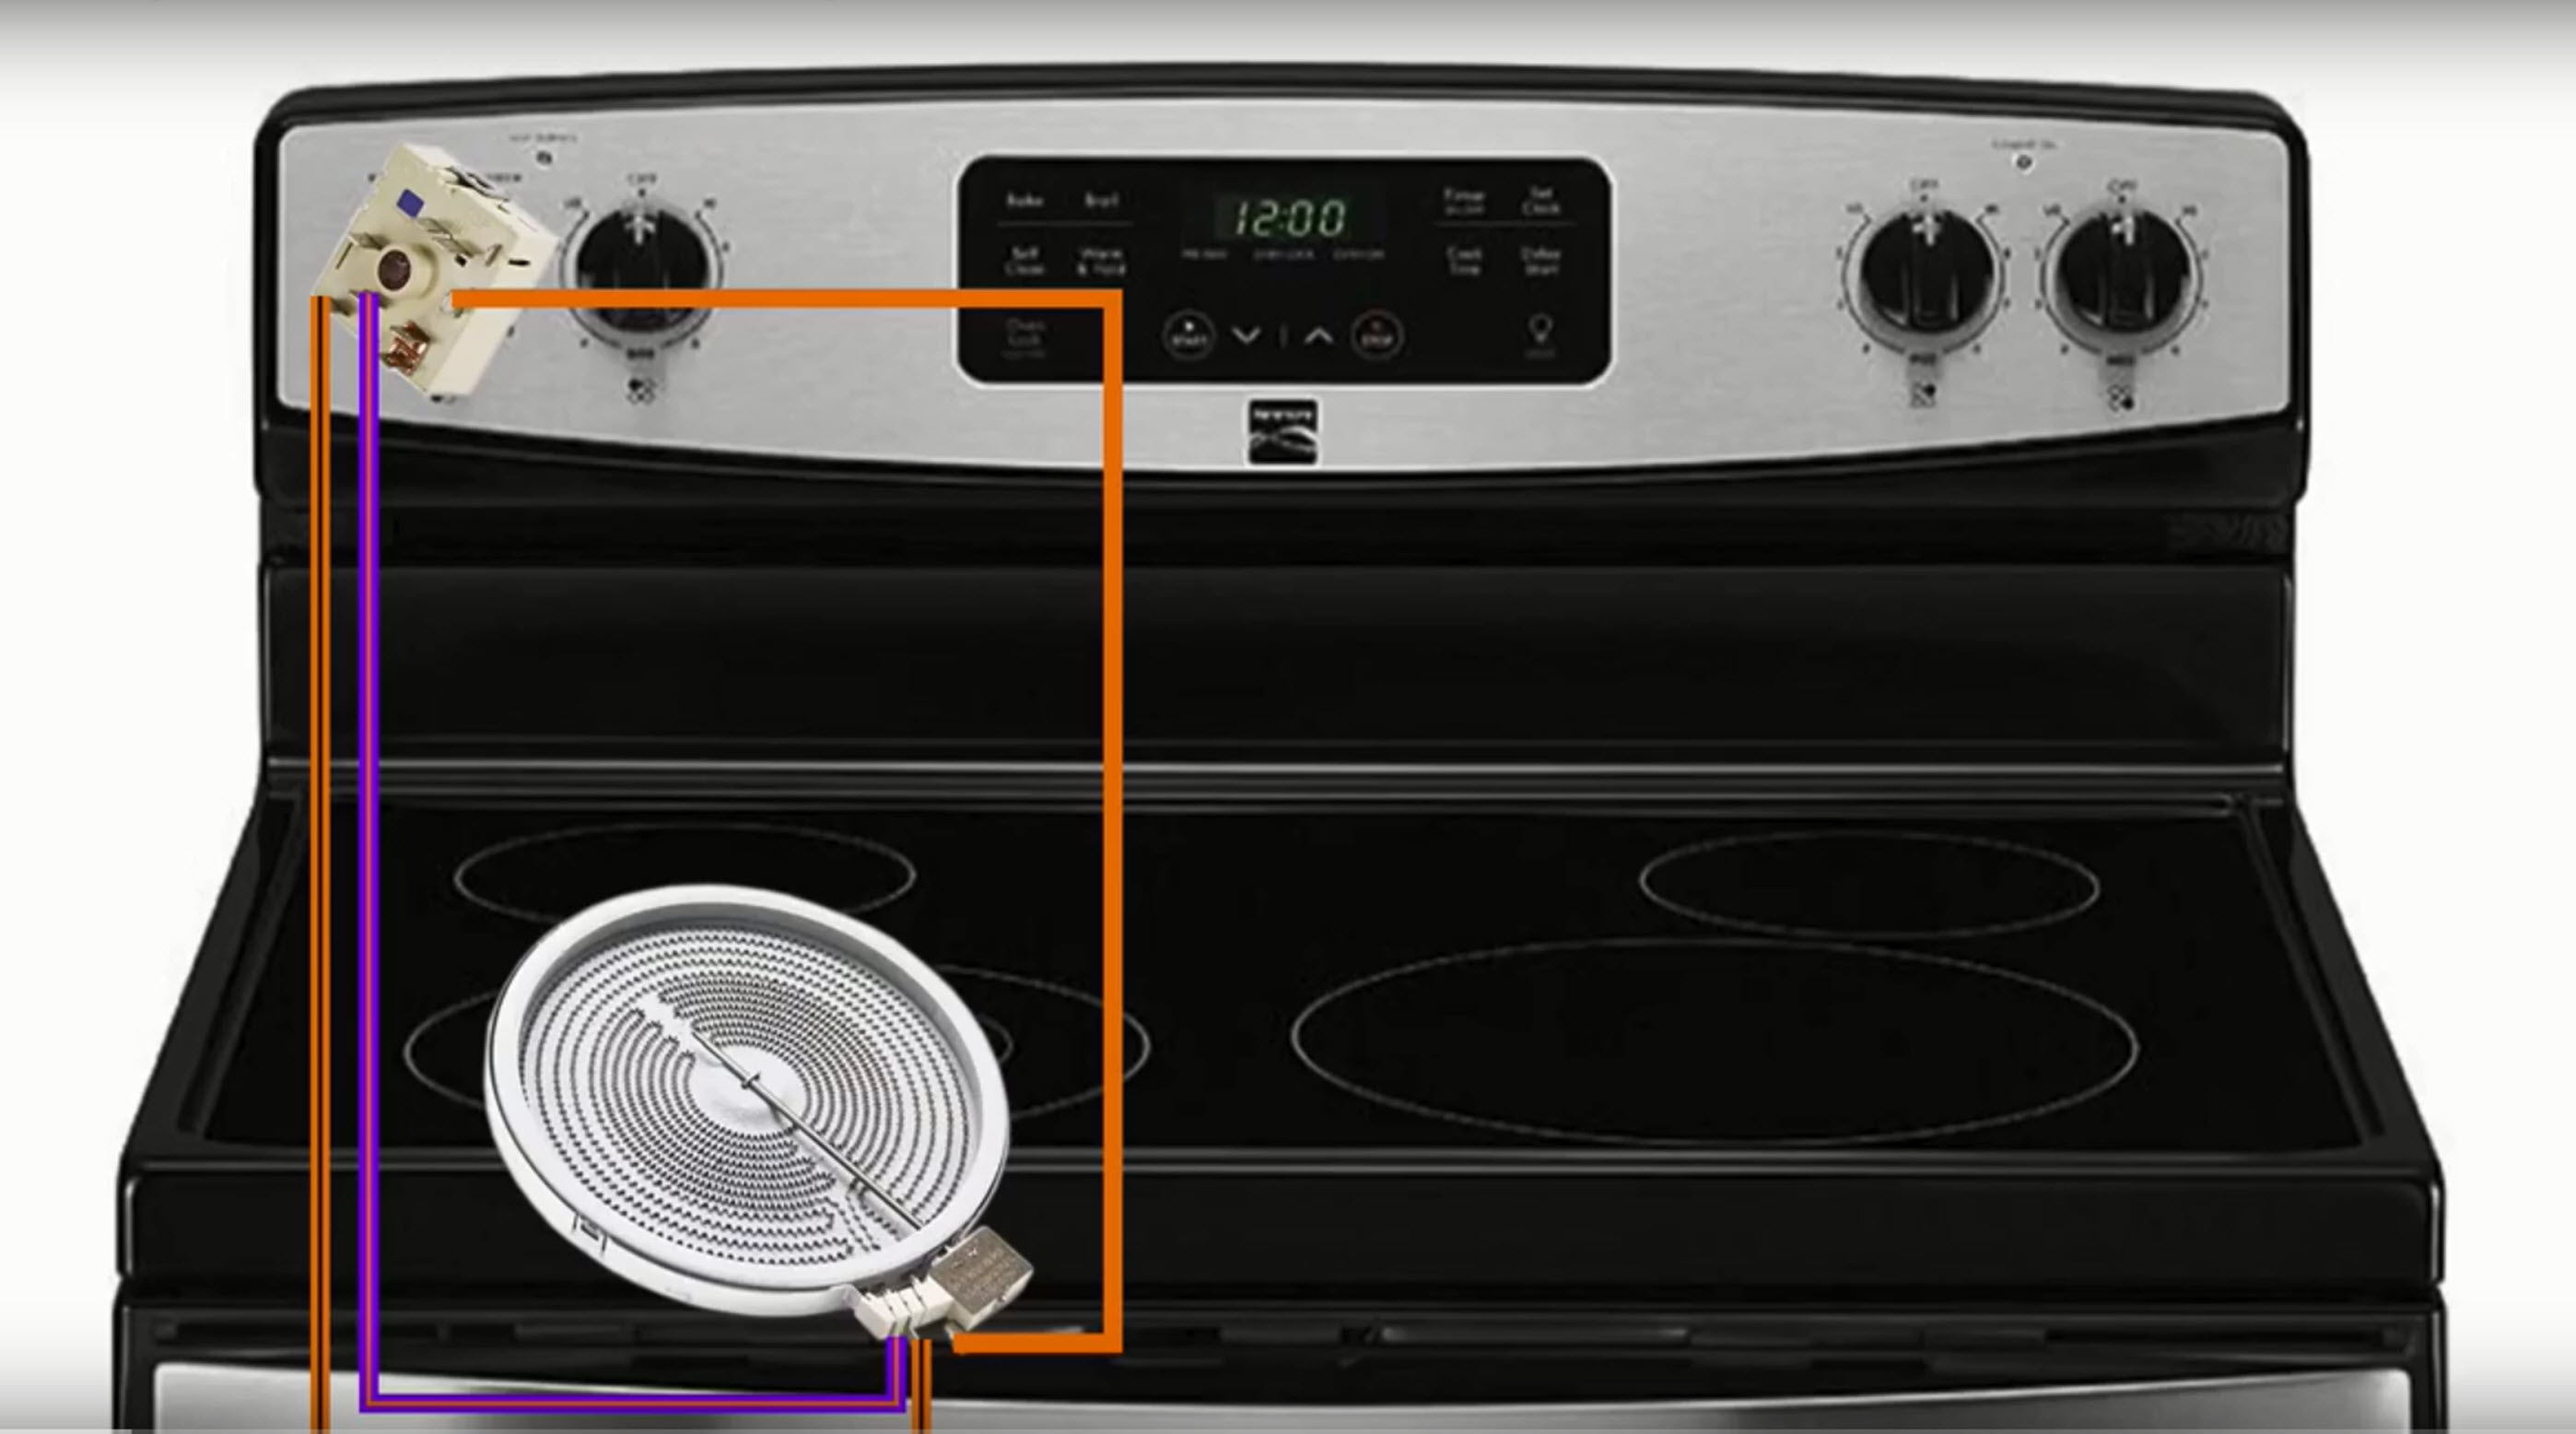 How to replace a range hidden bake element | Repair guide Kenmore Range Wiring Diagram on